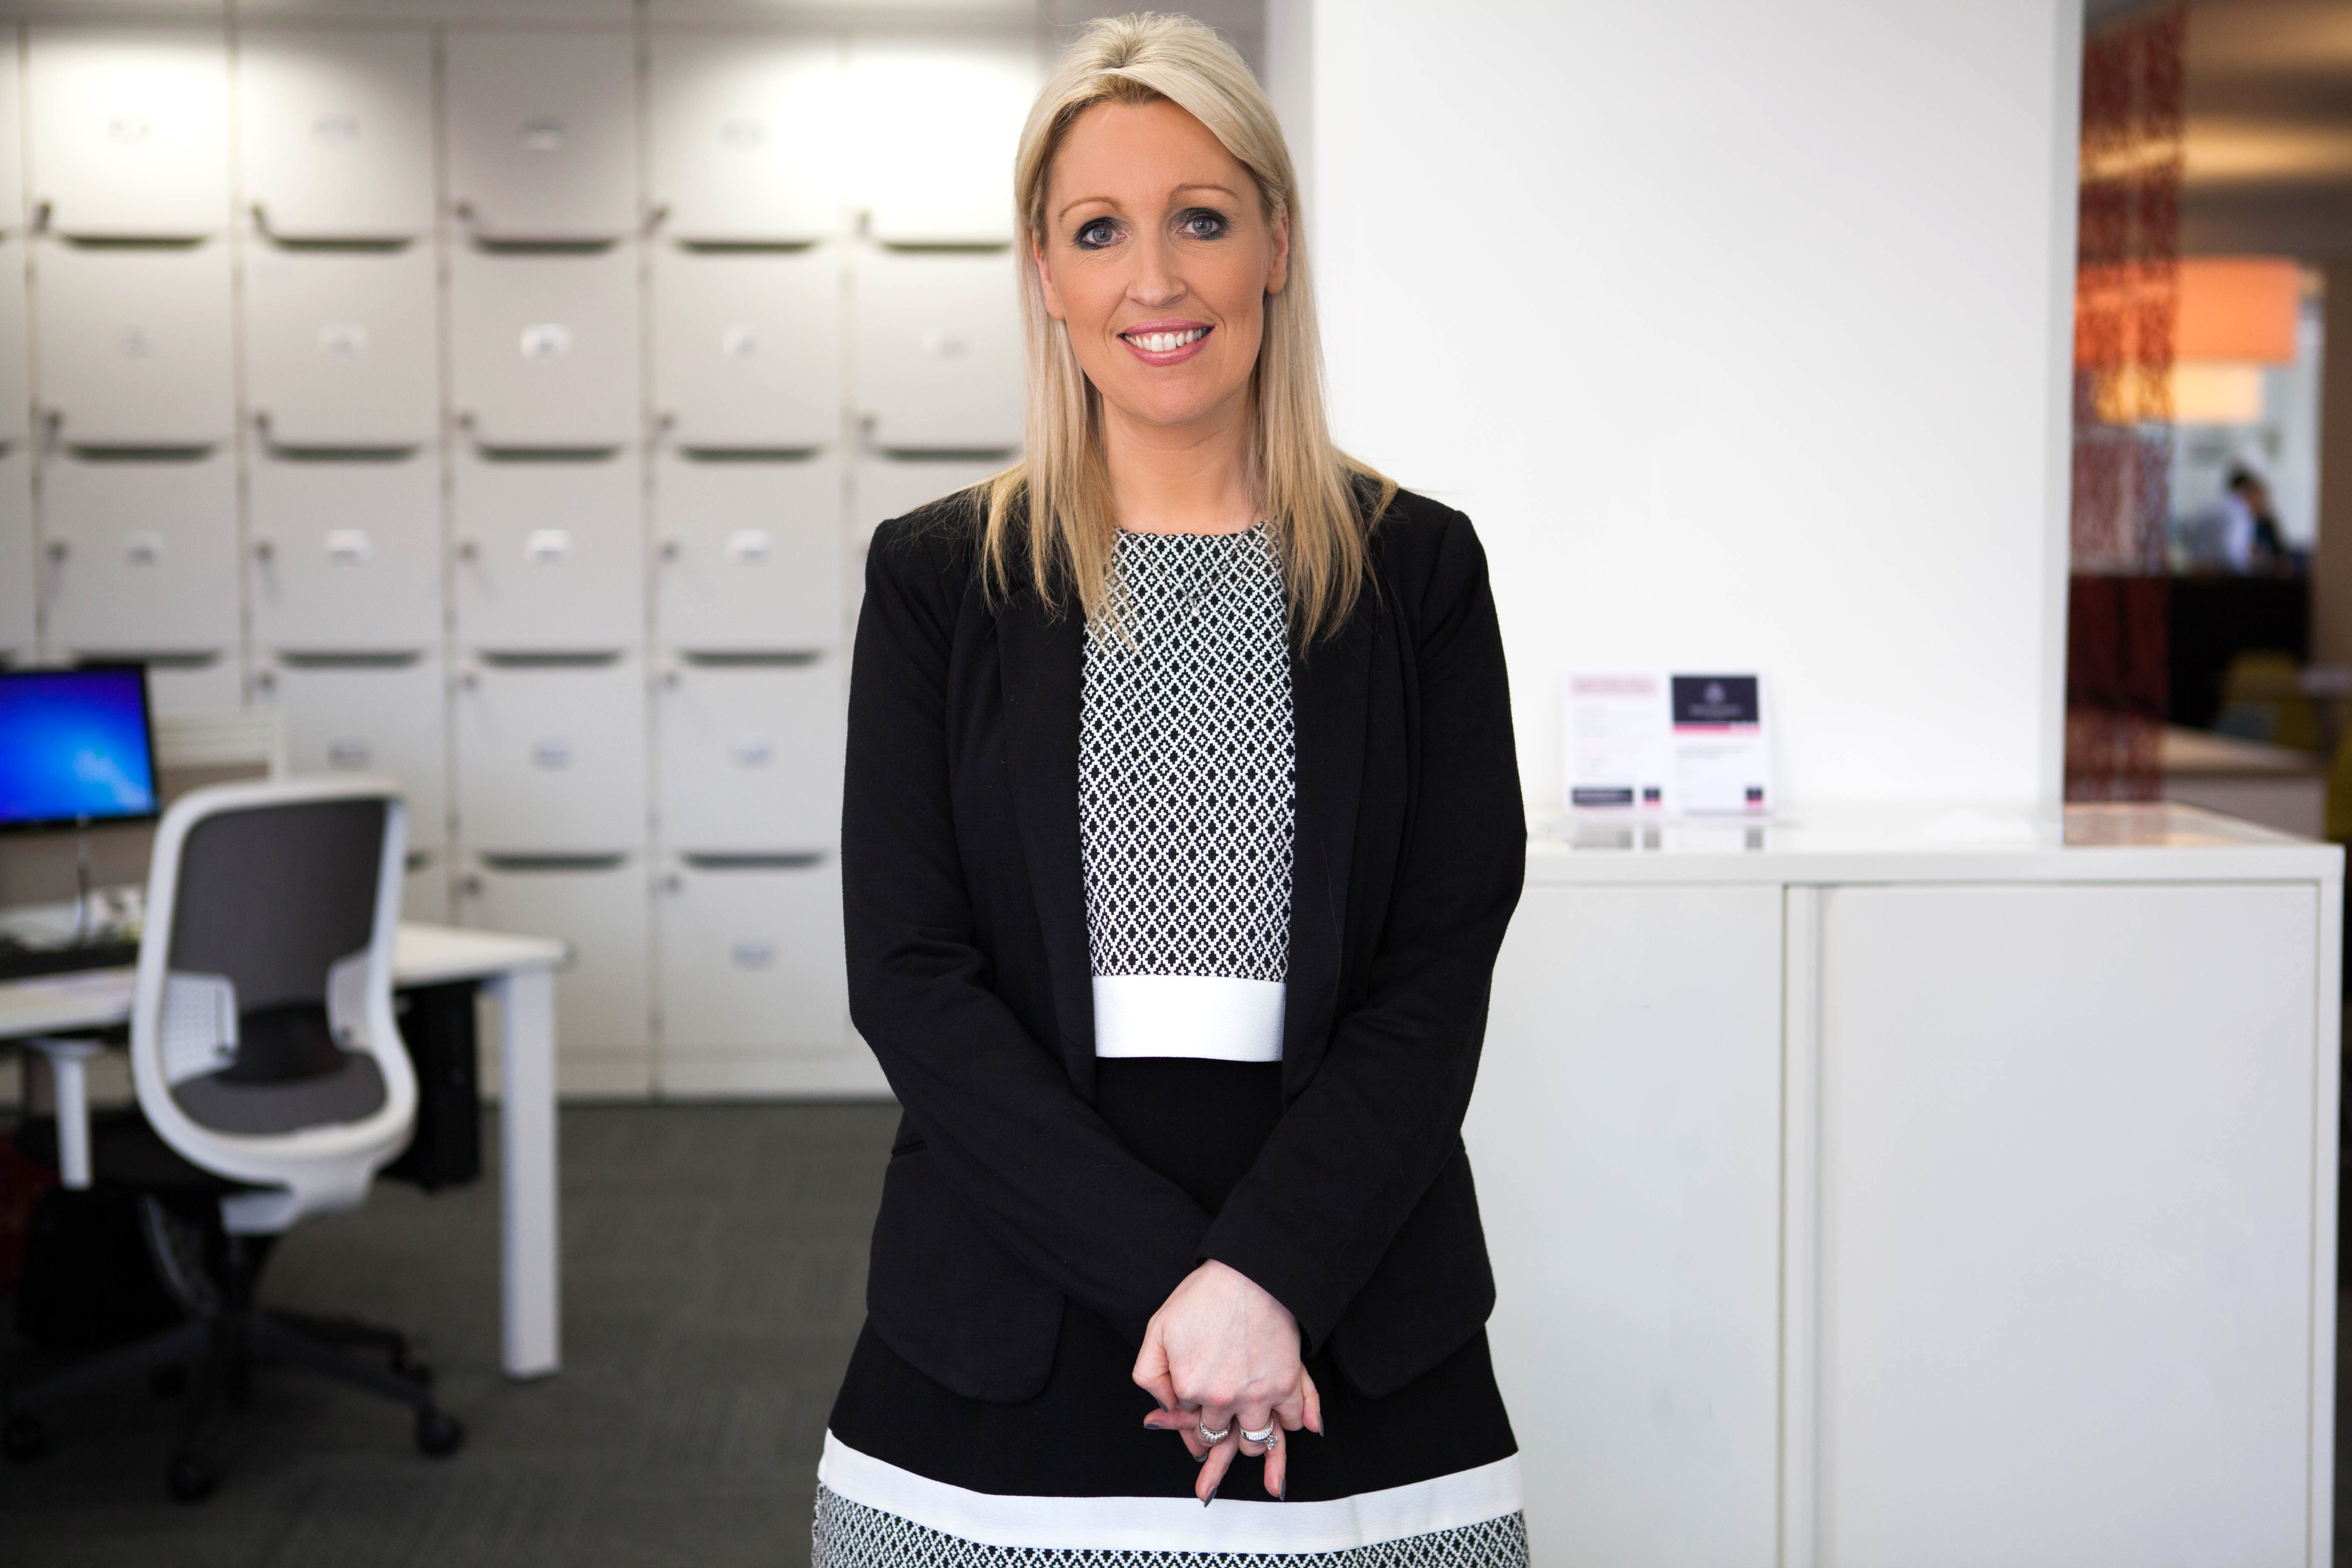 The Female Business Owner's Modern Approach to Banking